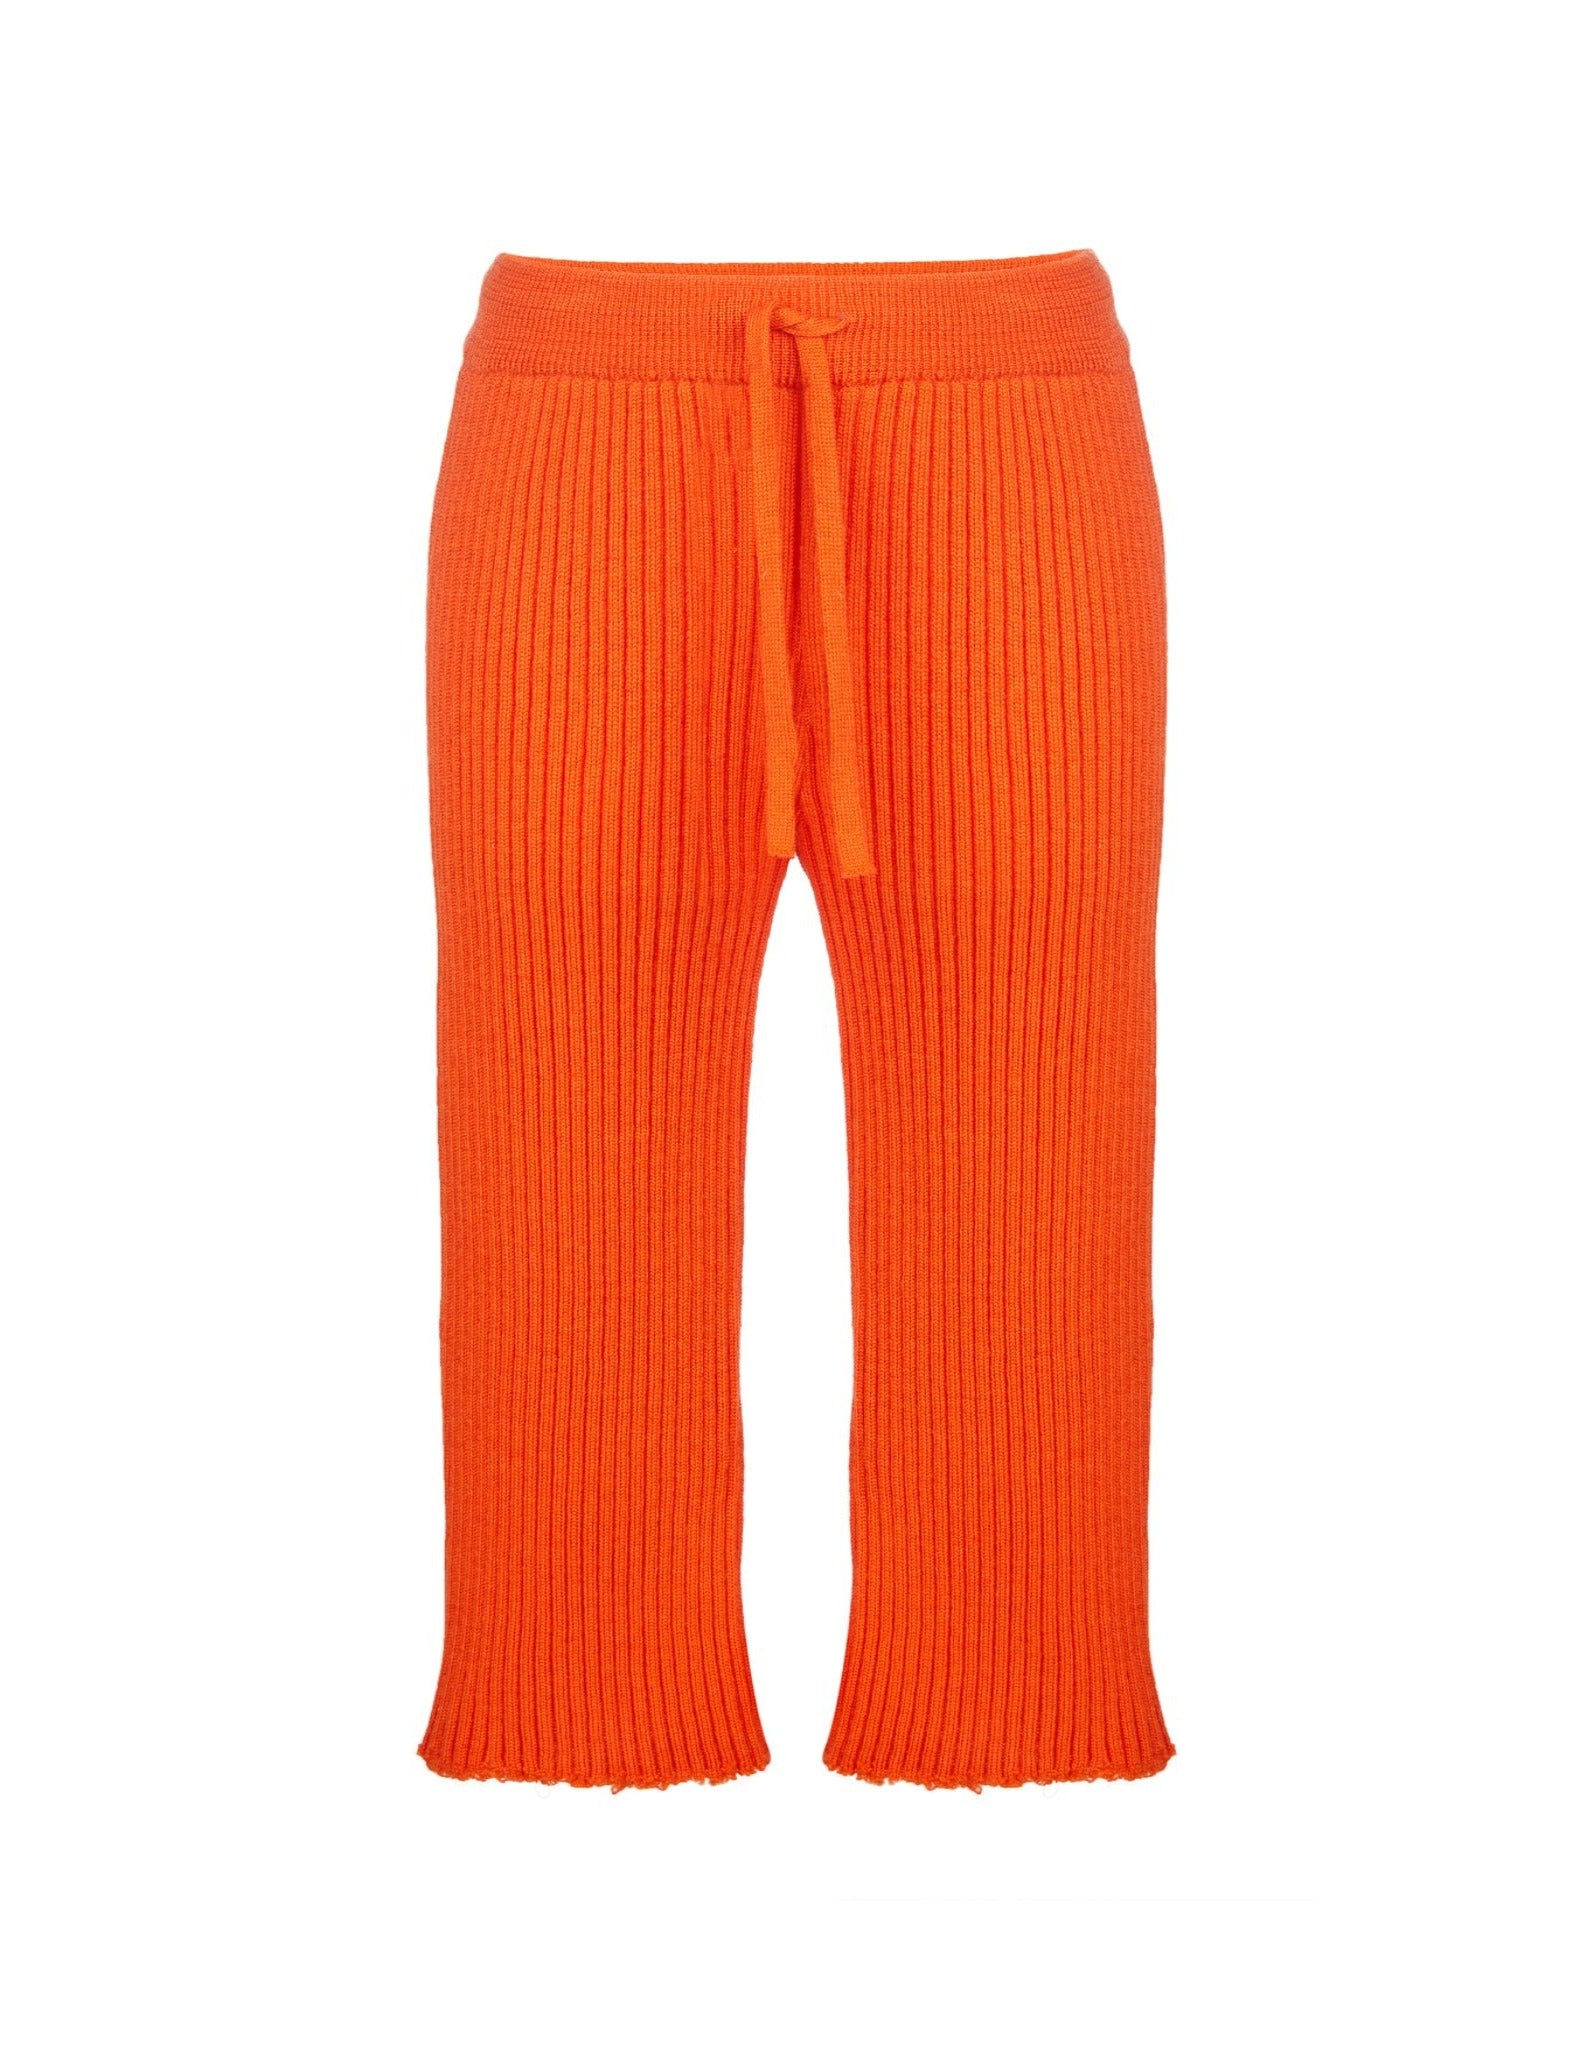 M'A KIDS WAISTBAND TROUSERS IN ORANGE